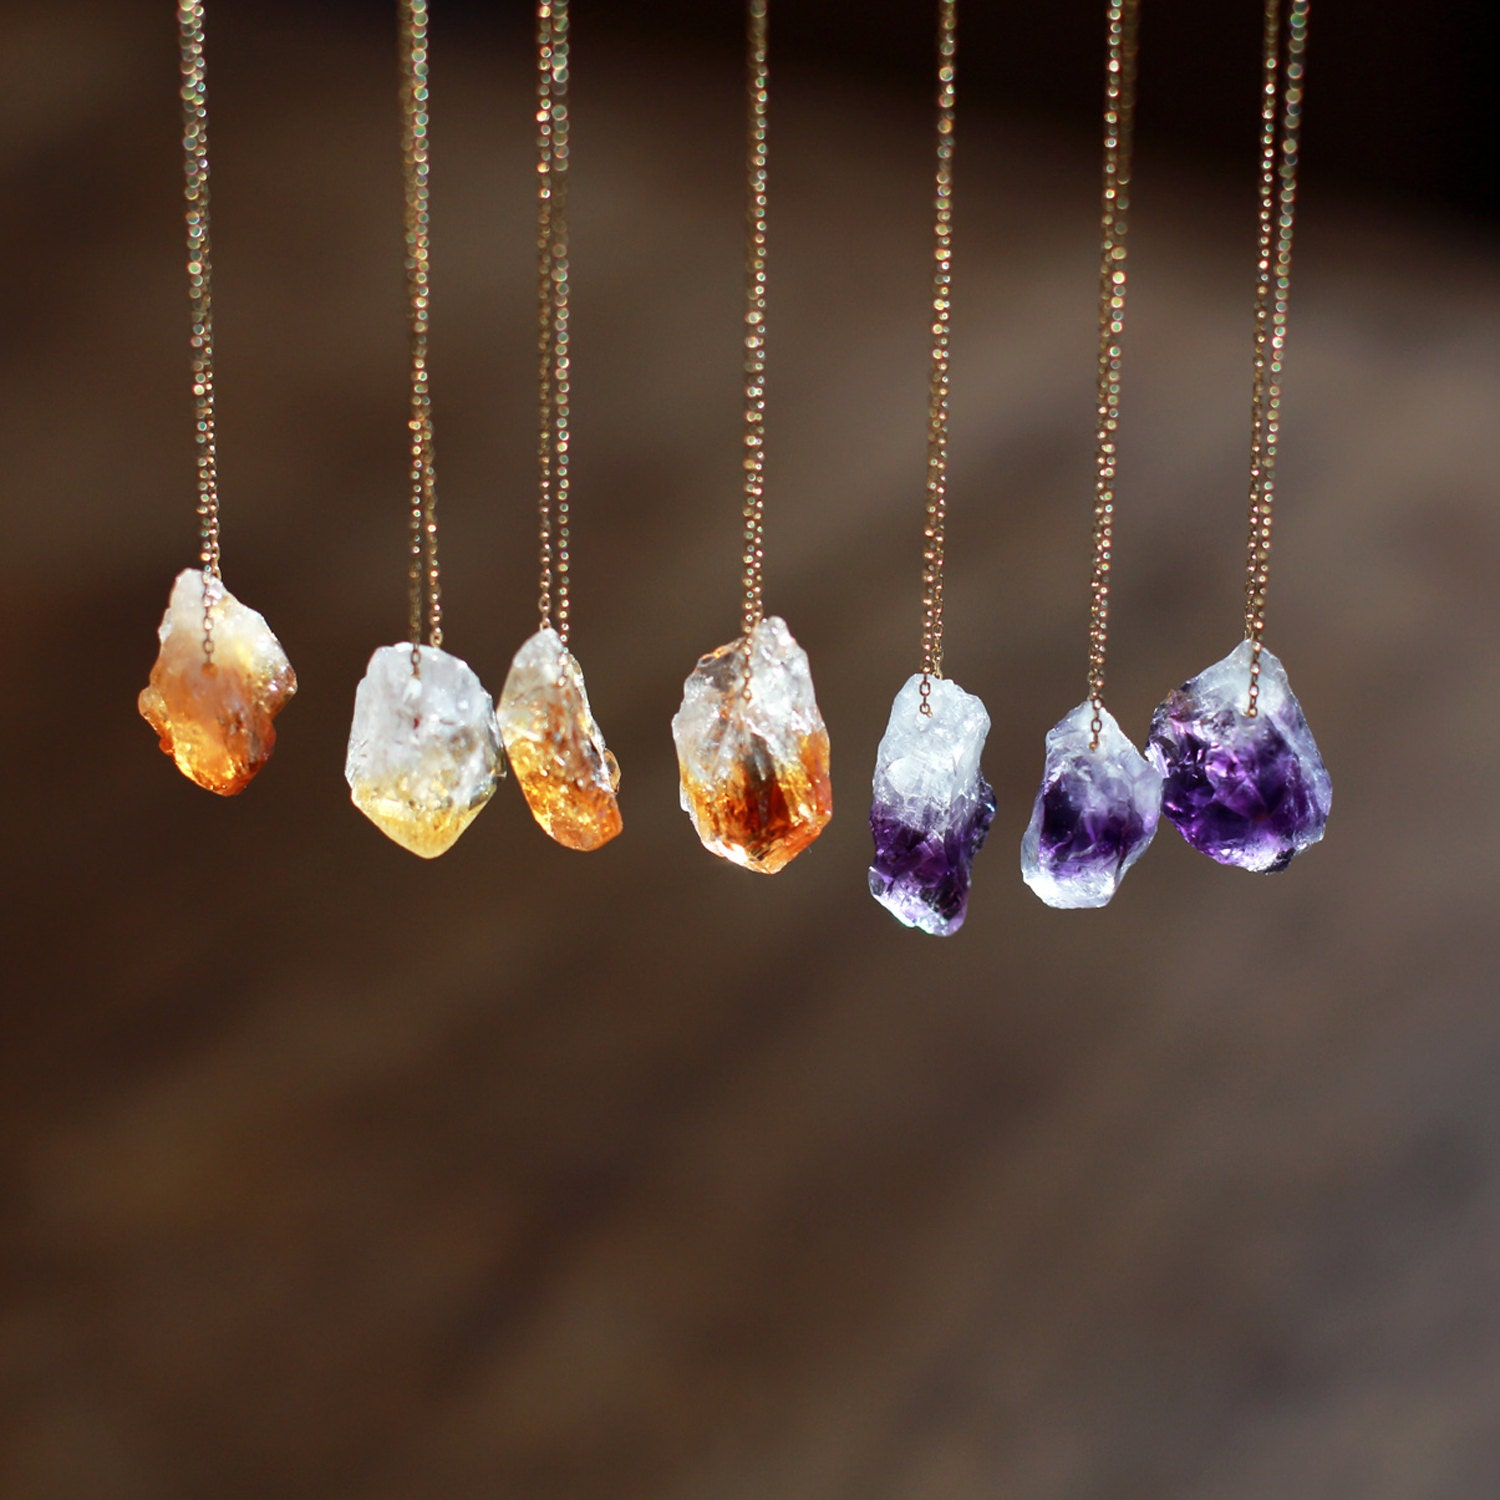 gems shop stone necklaces nature by sapphire designs womens raw necklace